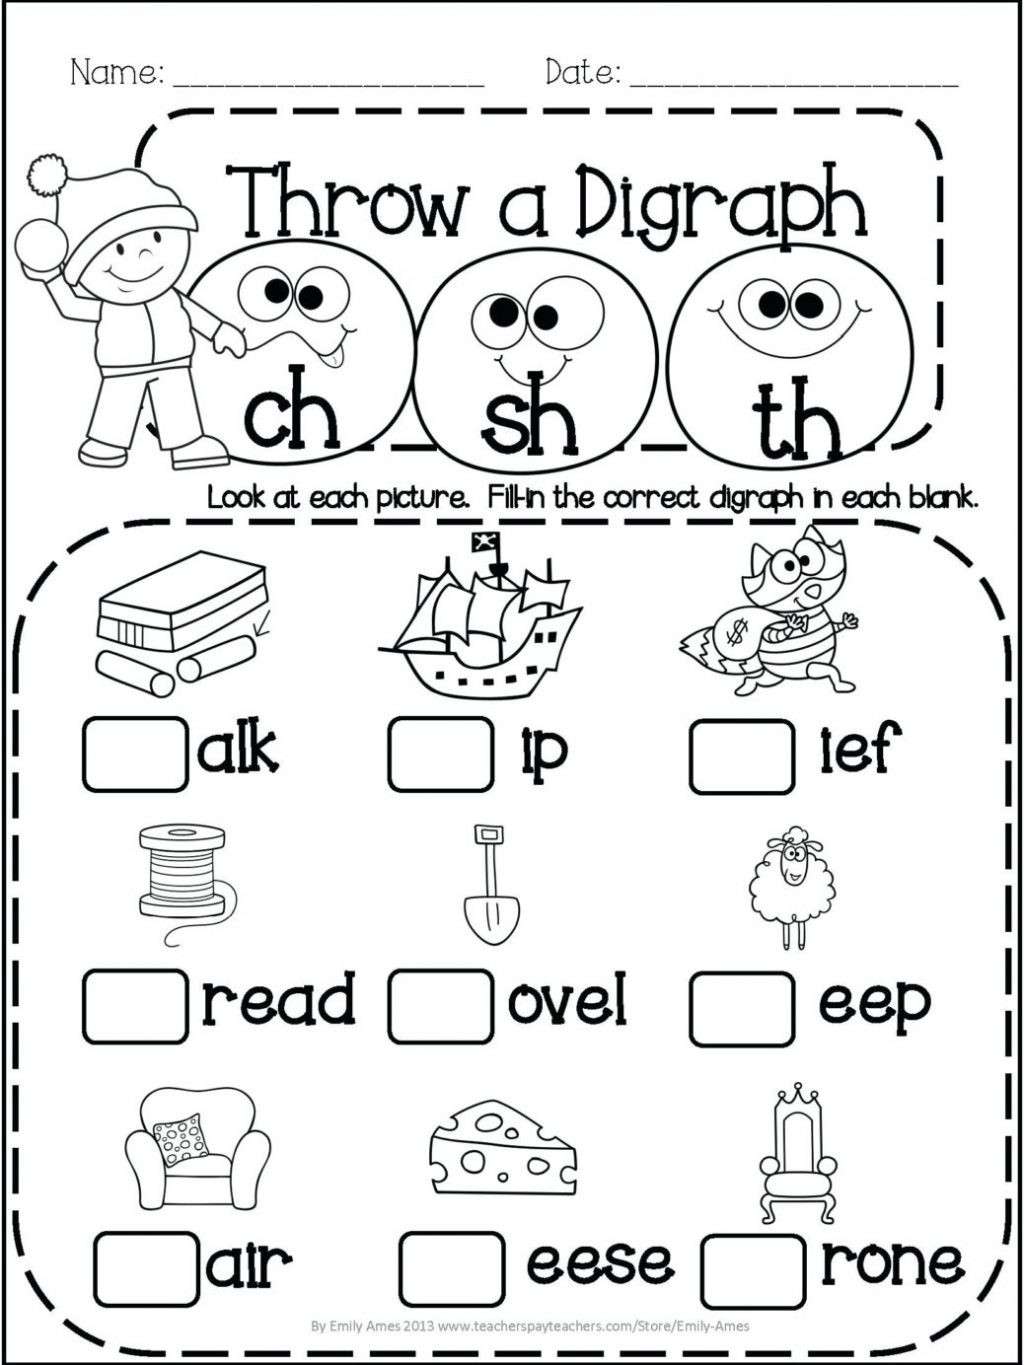 Short Vowel Worksheets 1st Grade Worksheet Awesome 1st Grade Phonicsksheets Image Ideas